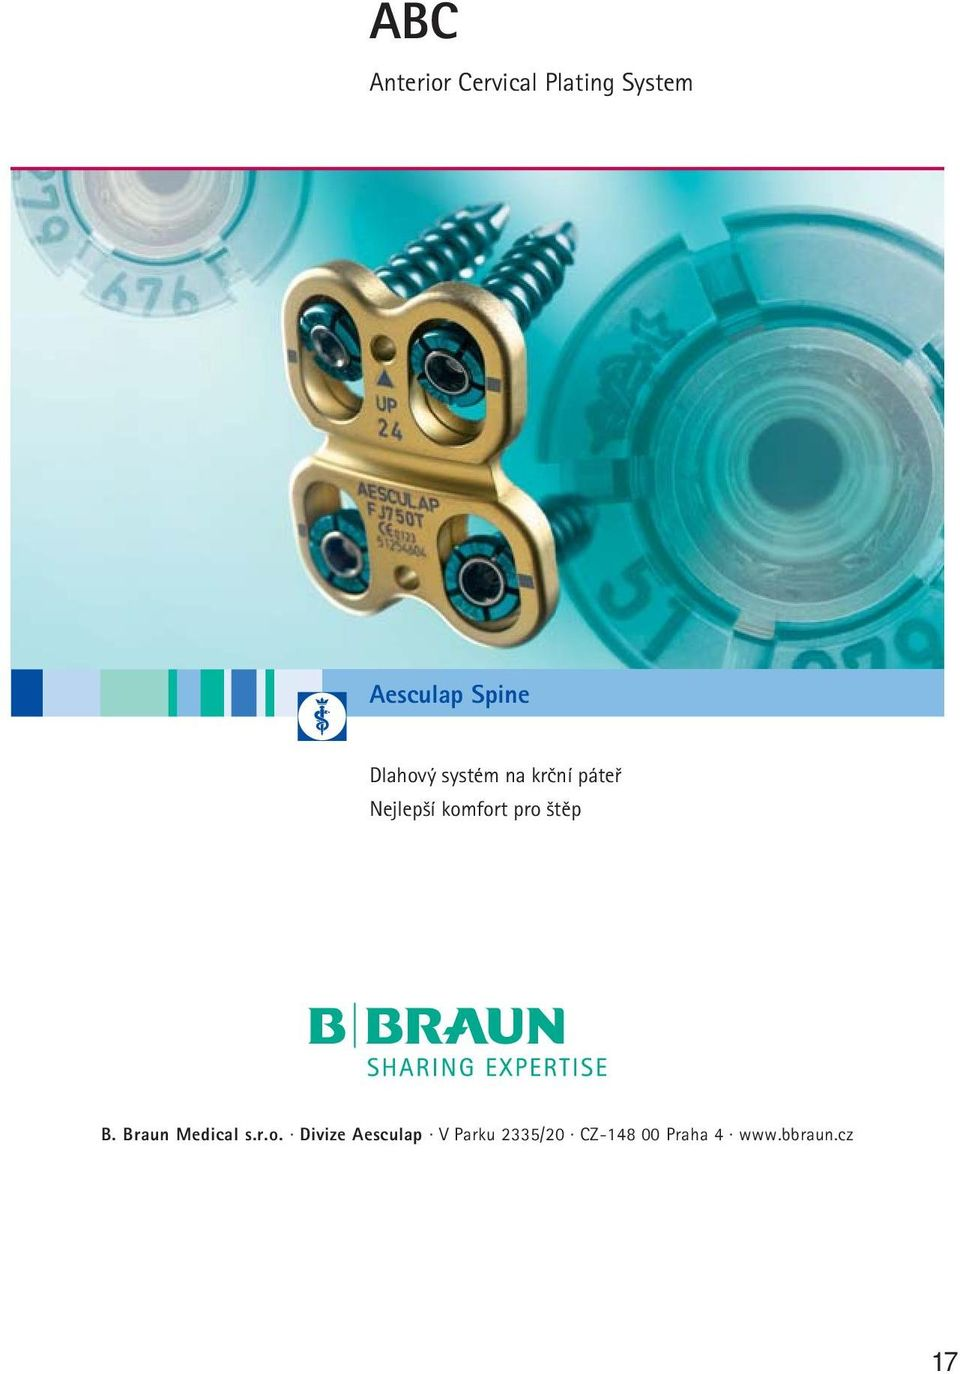 Braun Medical s.r.o.